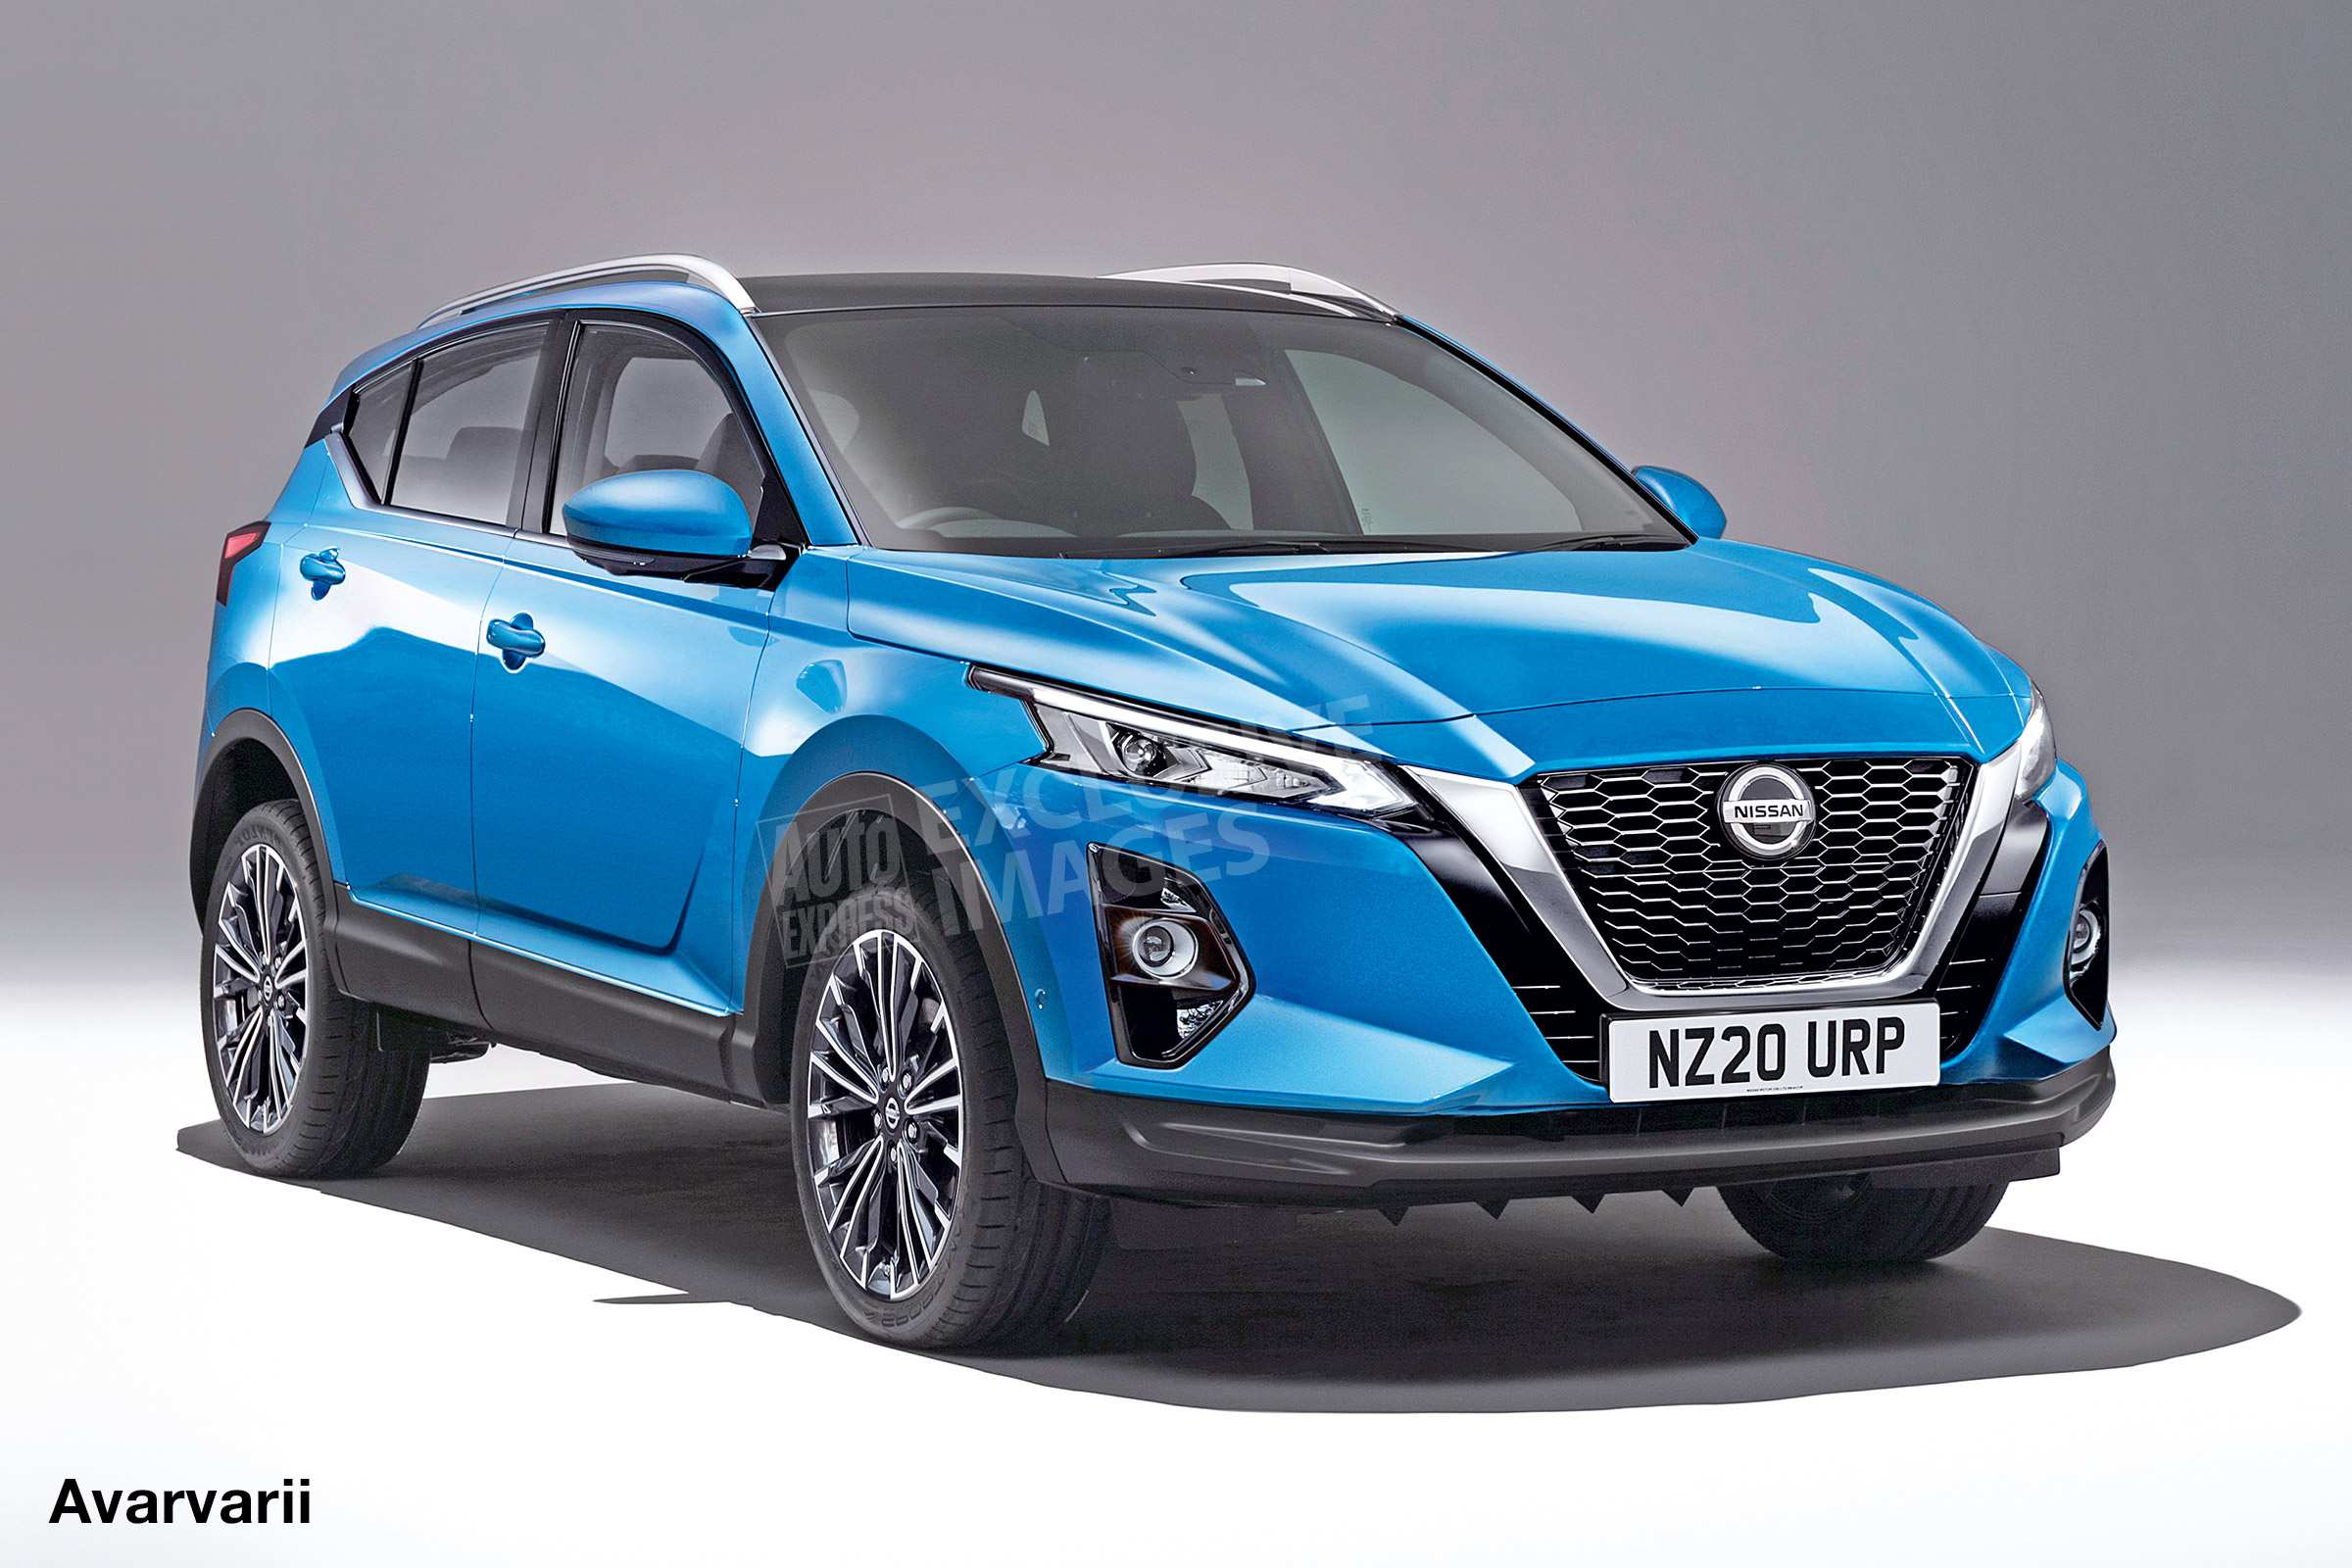 56 A Nissan Juke 2020 Uk Concept And Review